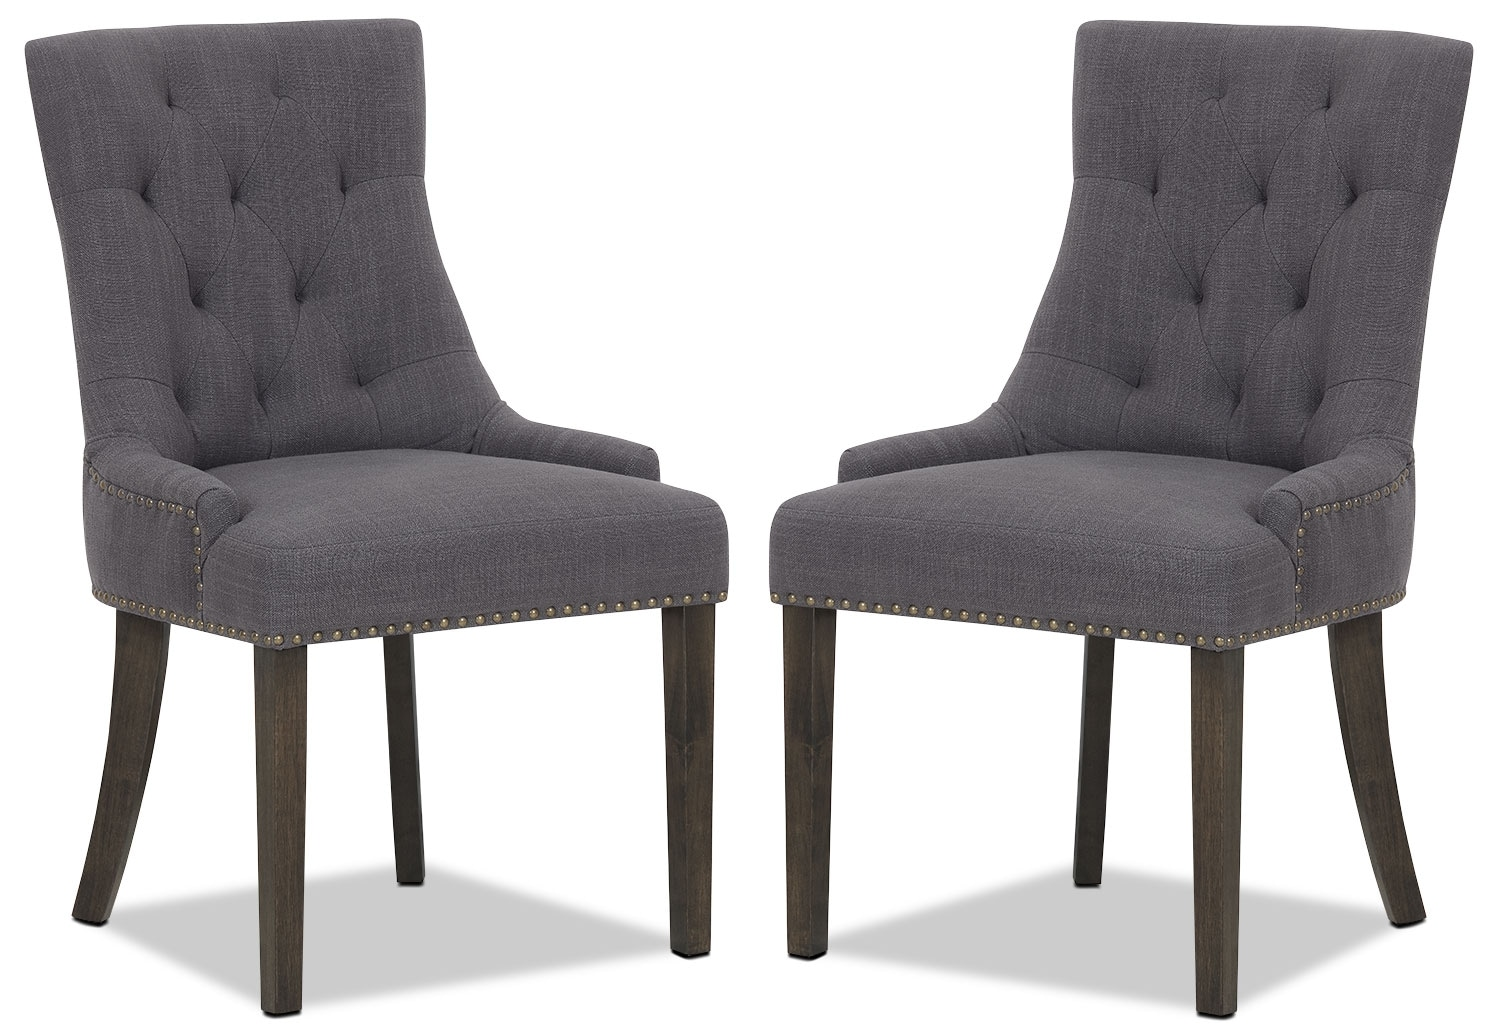 Caroline Wing Side Chair, Set of 2 – Grey